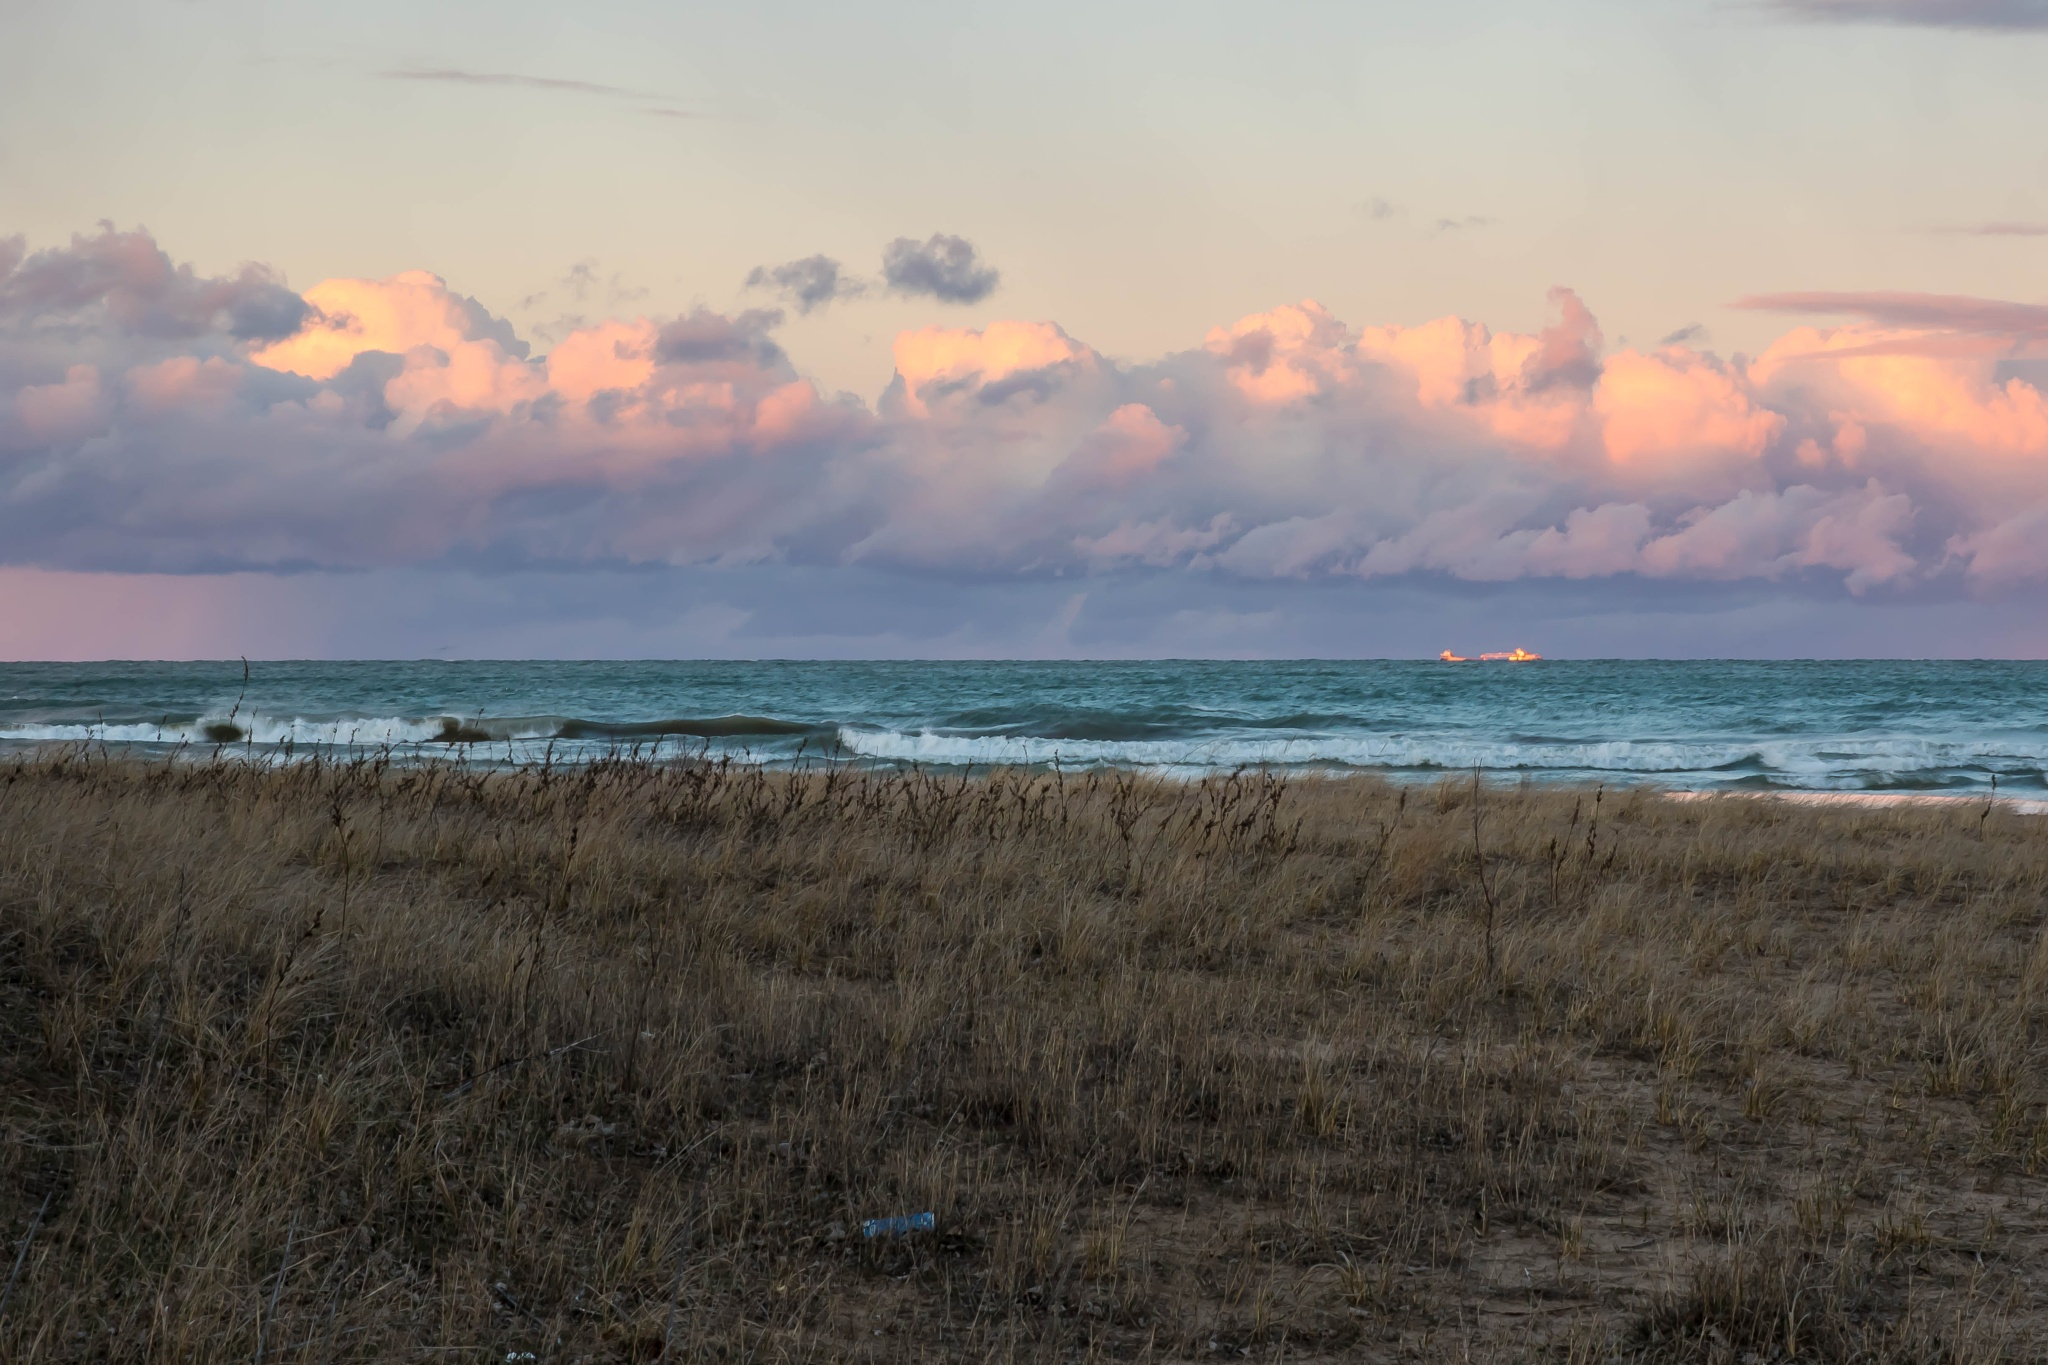 Freighter on the Great Lakes  by OutHouseStudio